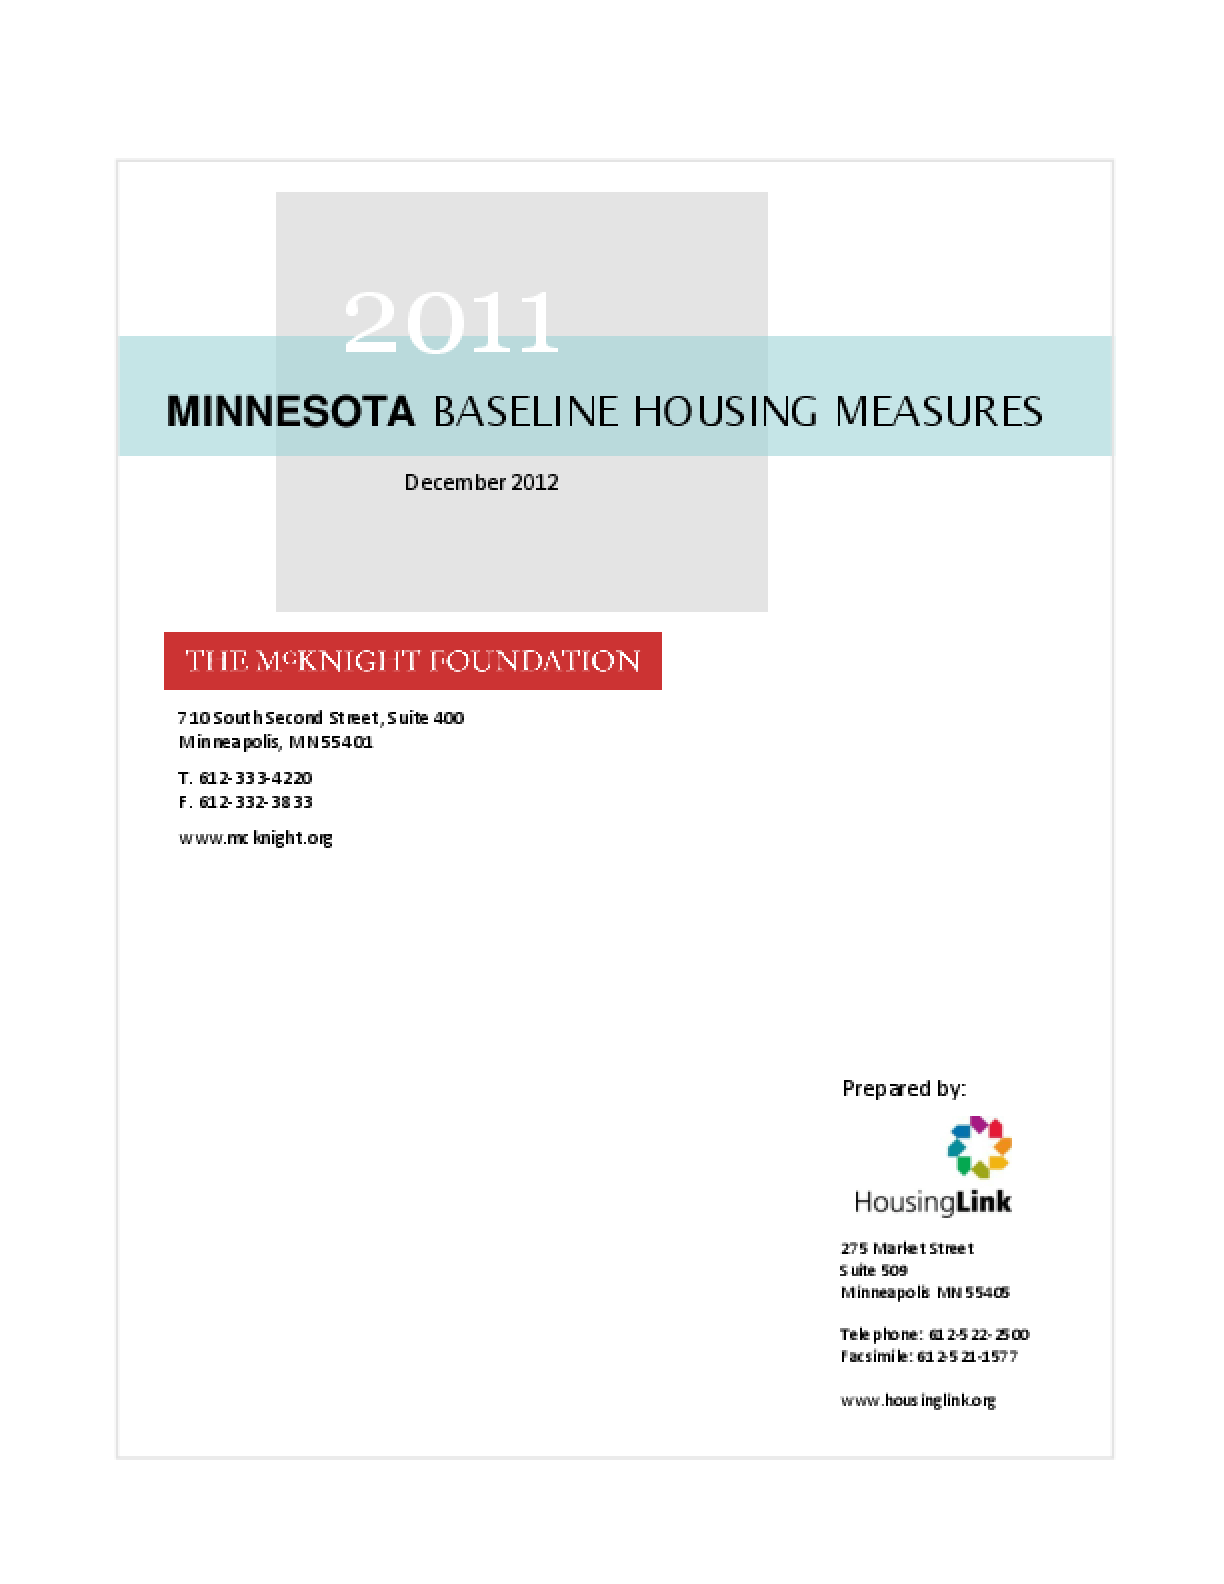 2011 Minnesota Baseline Housing Measures